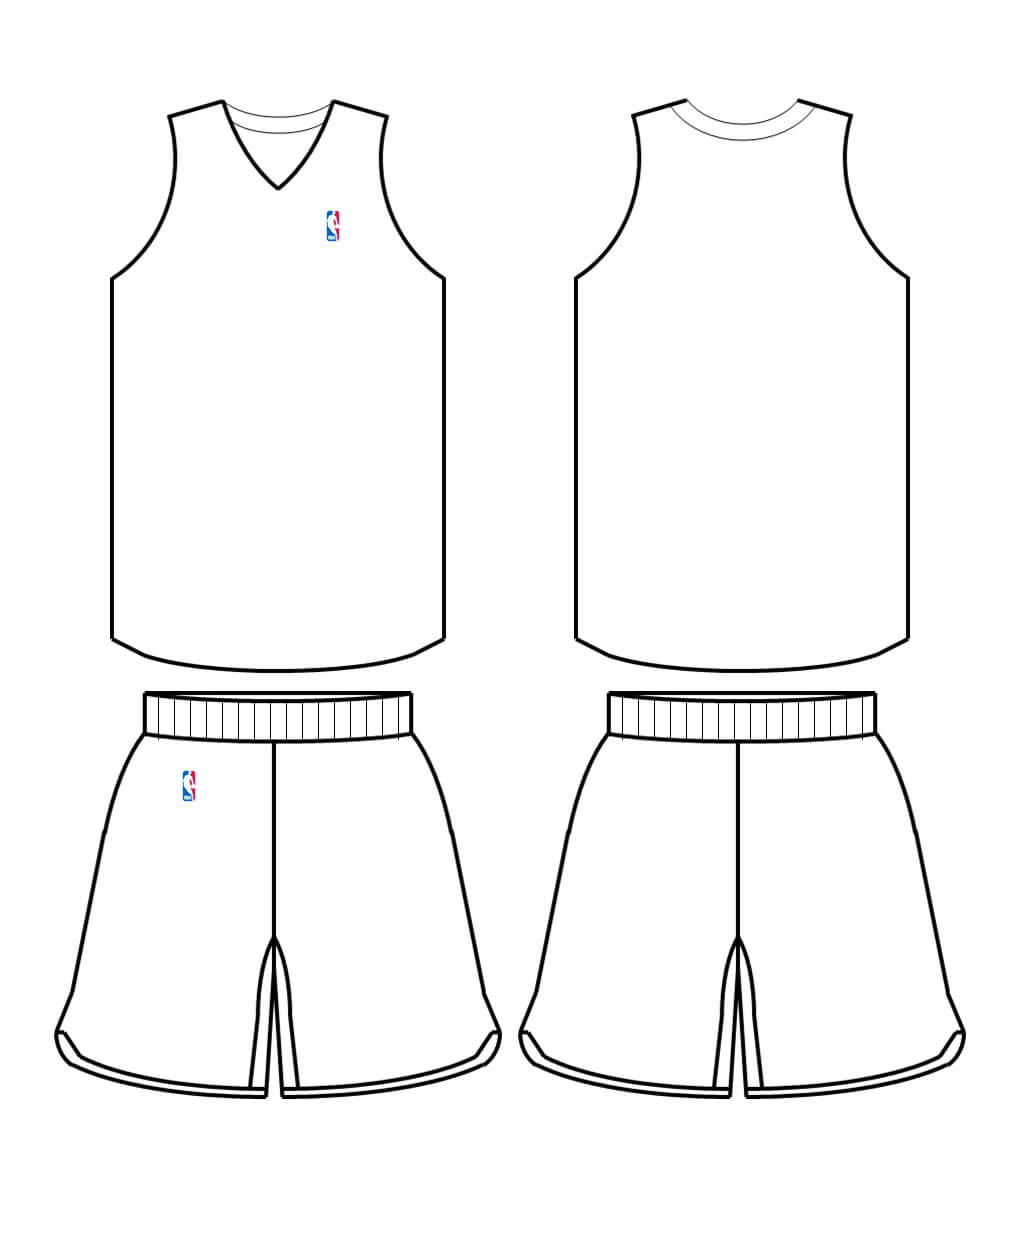 Free Blank Basketball Jersey, Download Free Clip Art, Free Pertaining To Blank Basketball Uniform Template